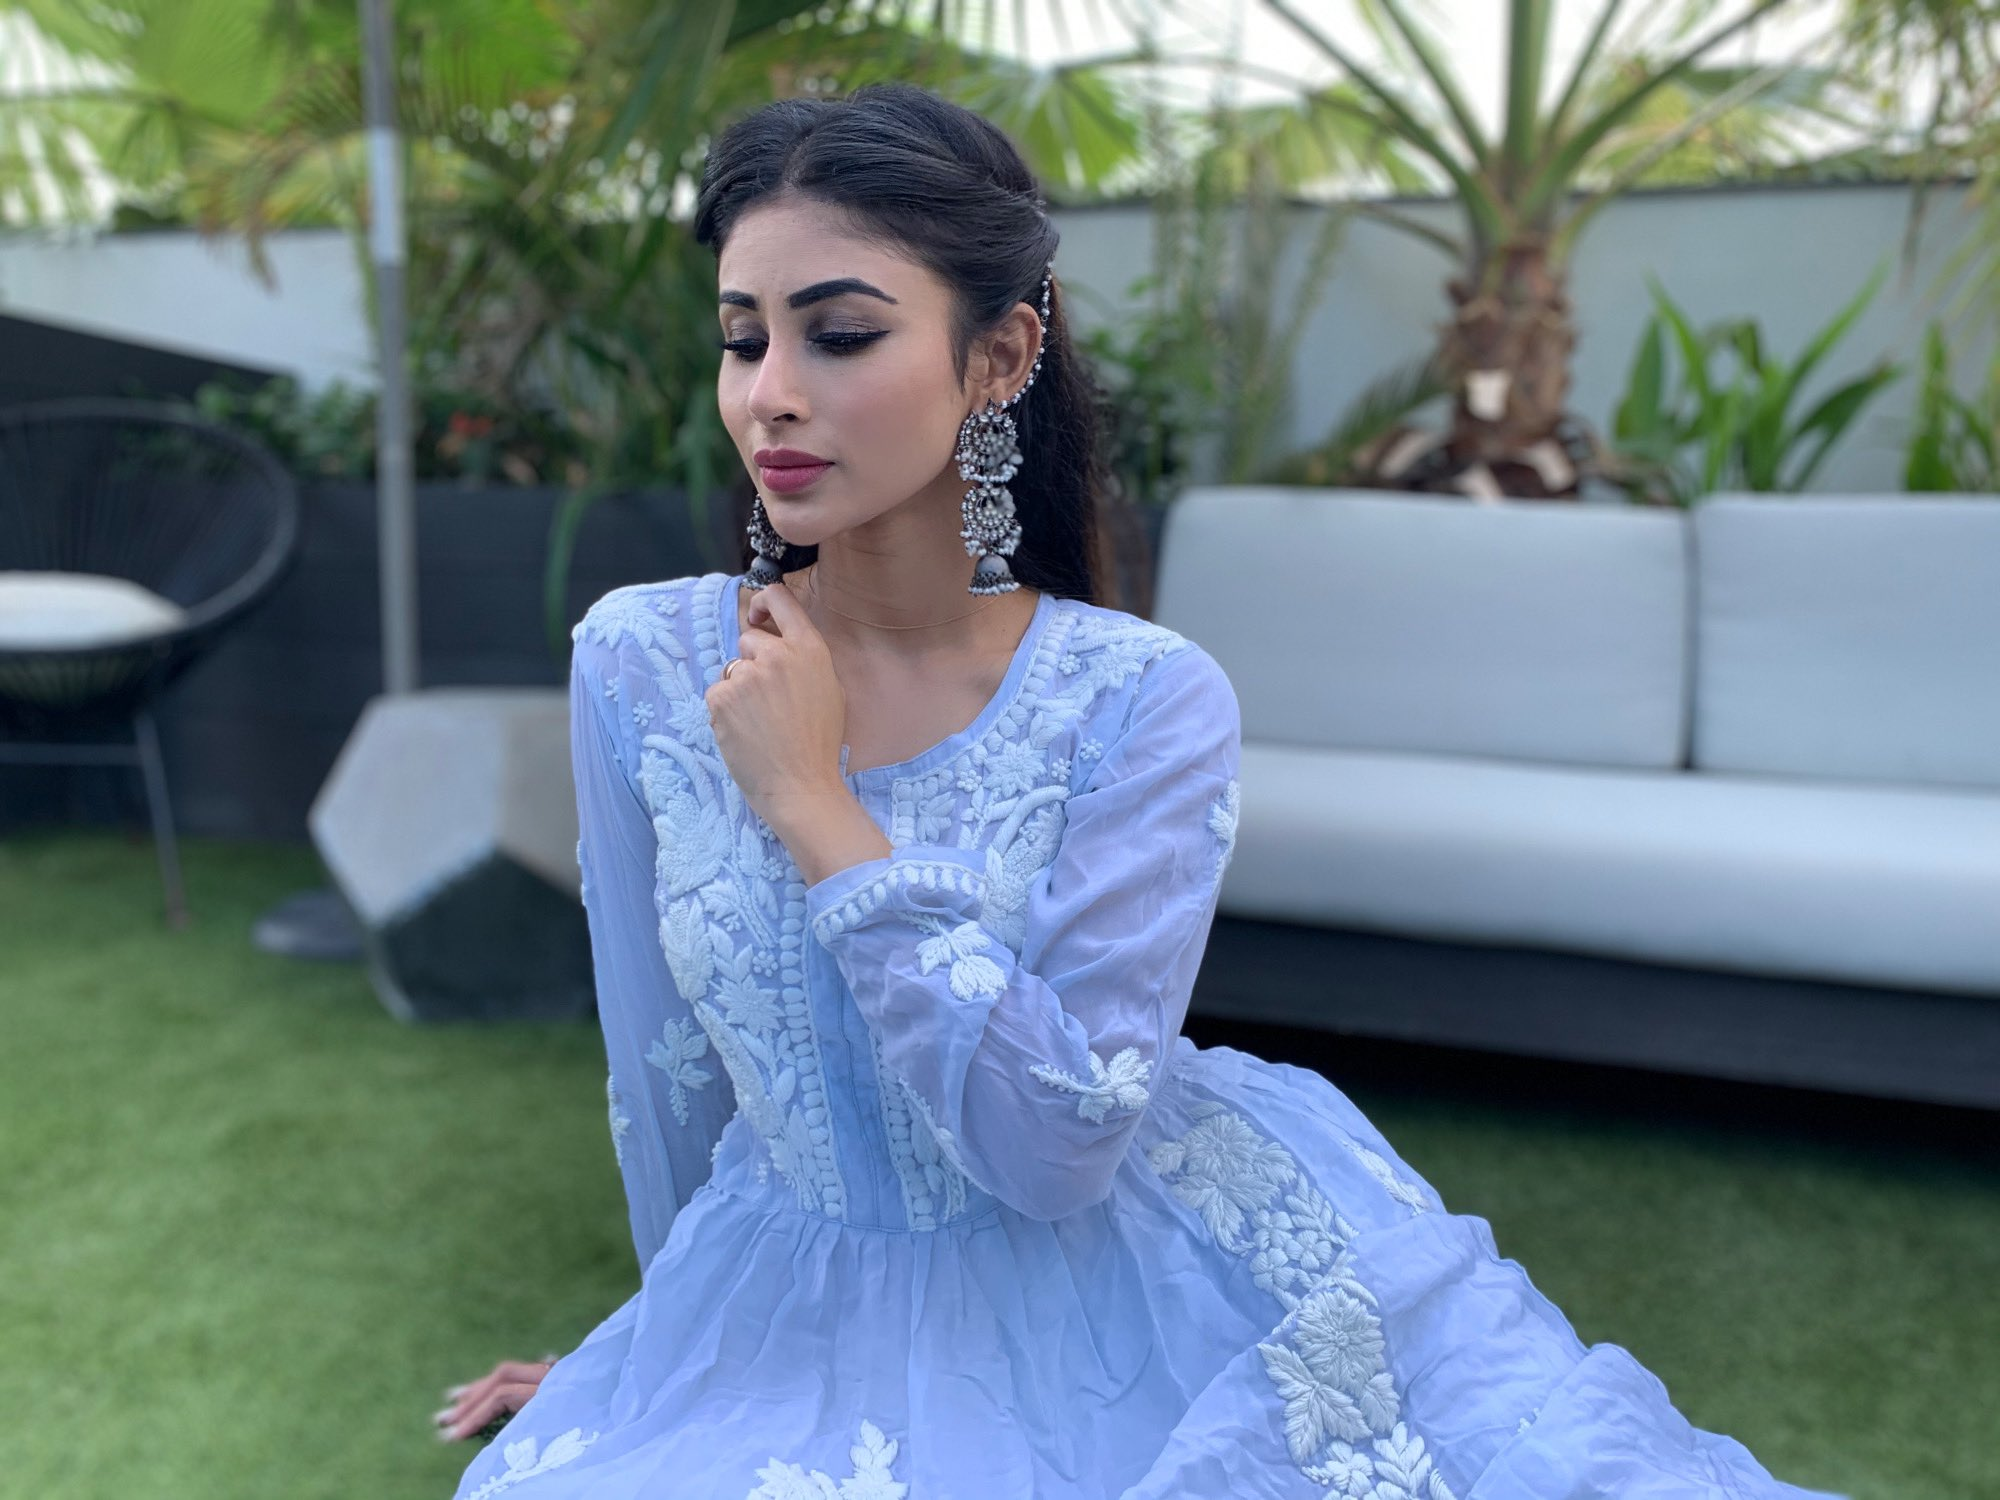 mouni roy looks so beautiful with her latest picture- newsdezire